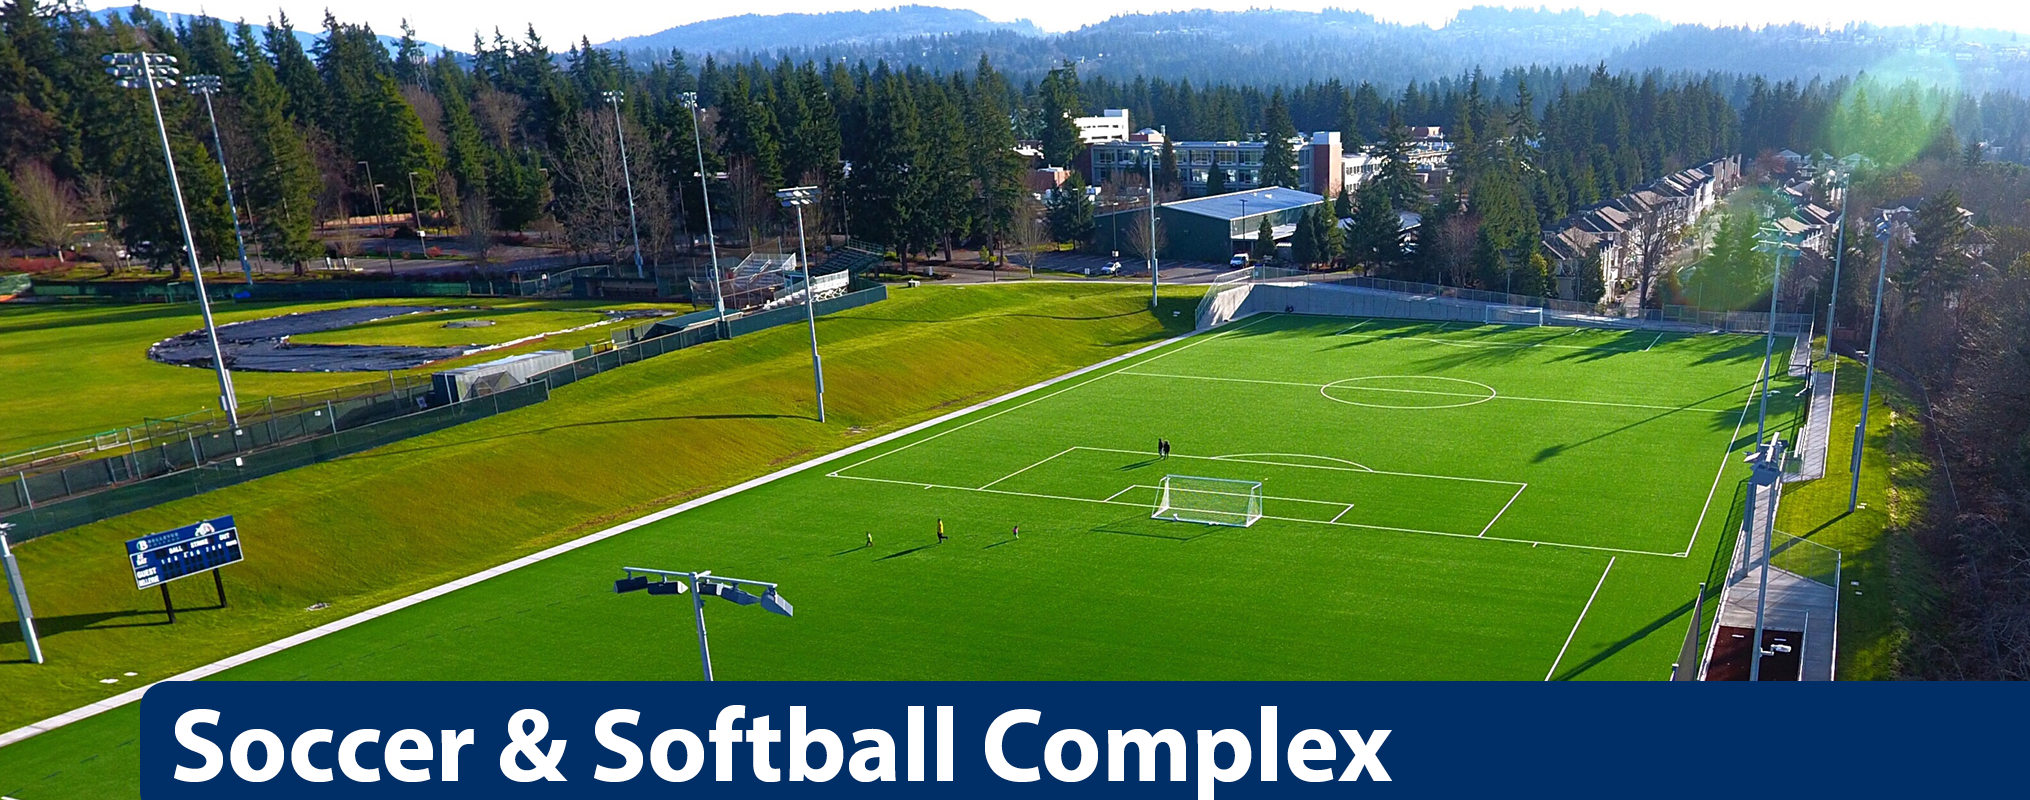 Soccer and softball fields with mountains in background